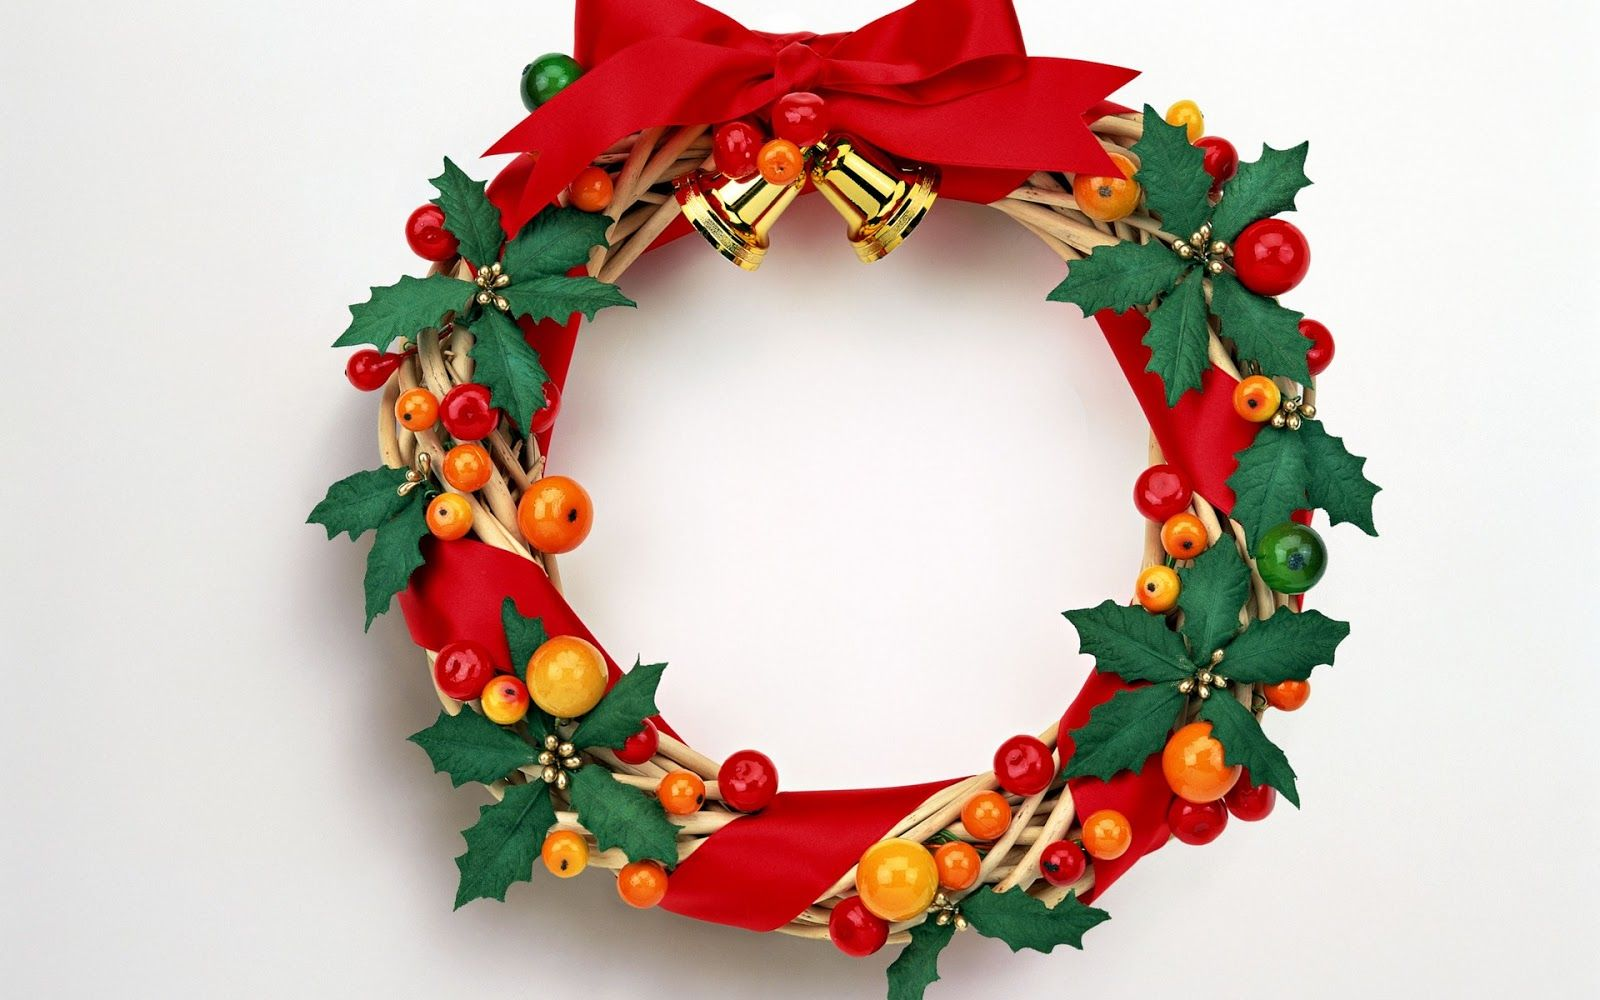 Christmas Wreath Ideas Wallpapers 2 | Christmas Wreath Ideas ...